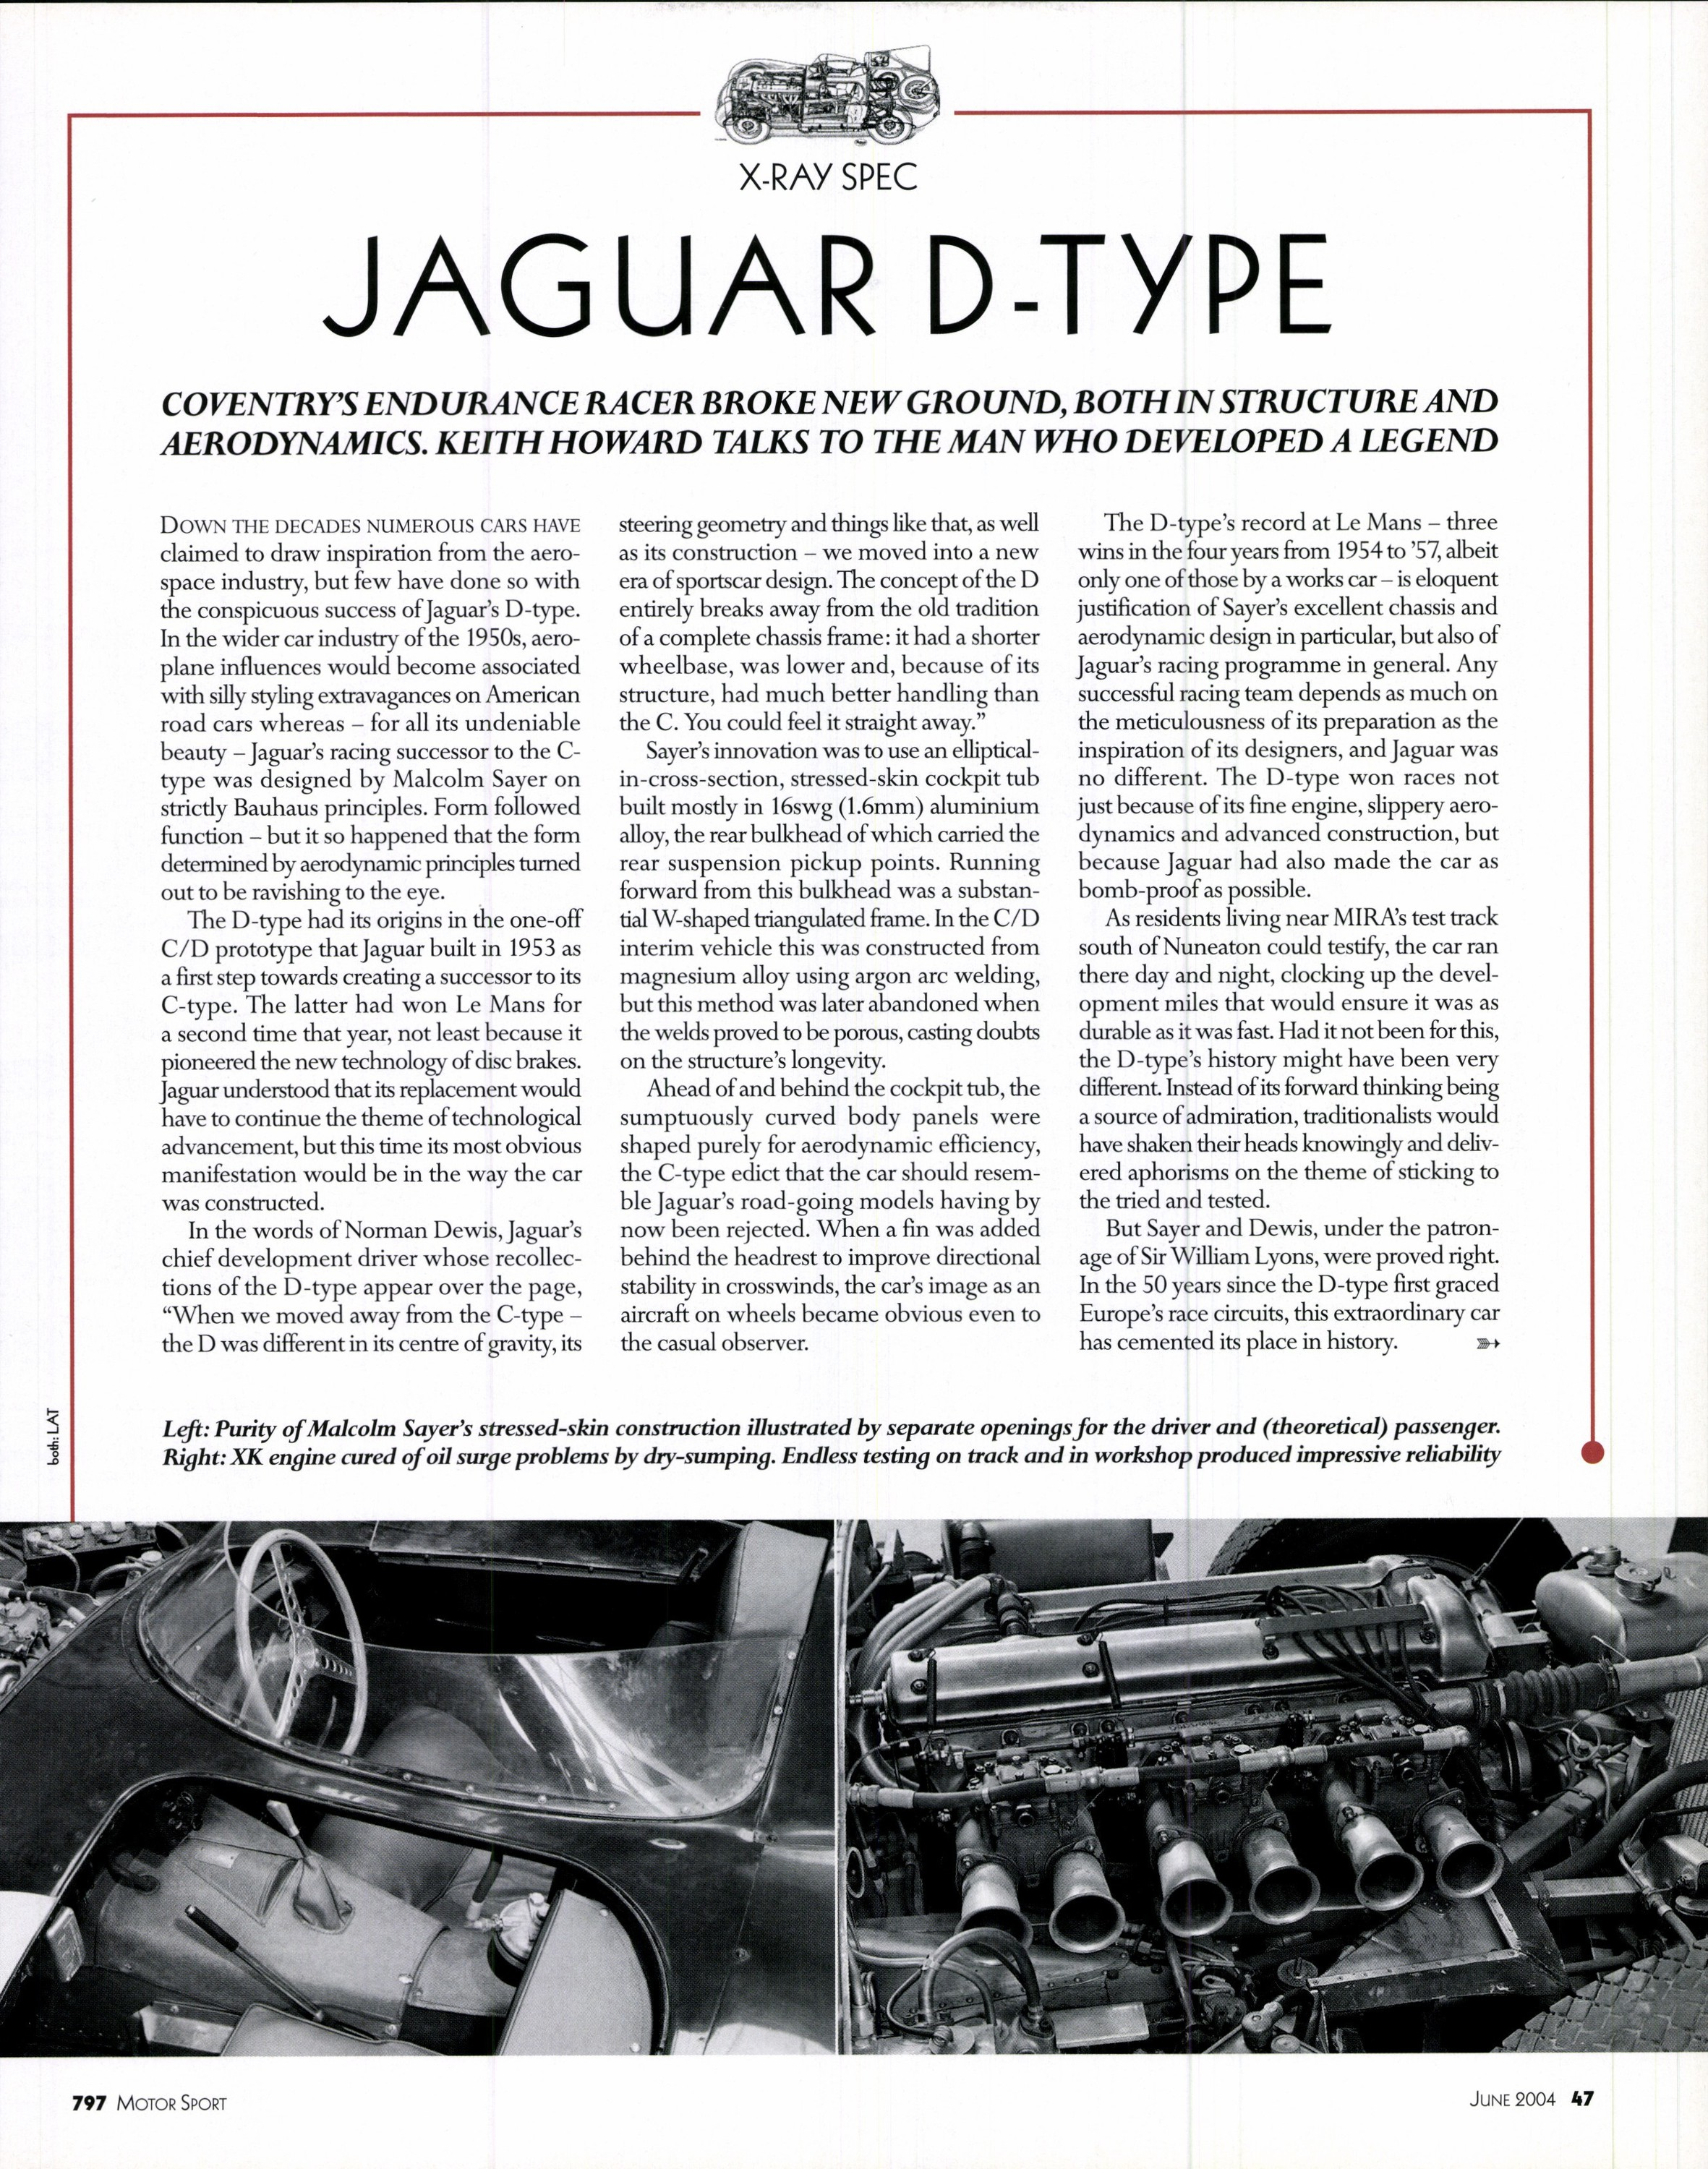 x ray spec jaguar d type image